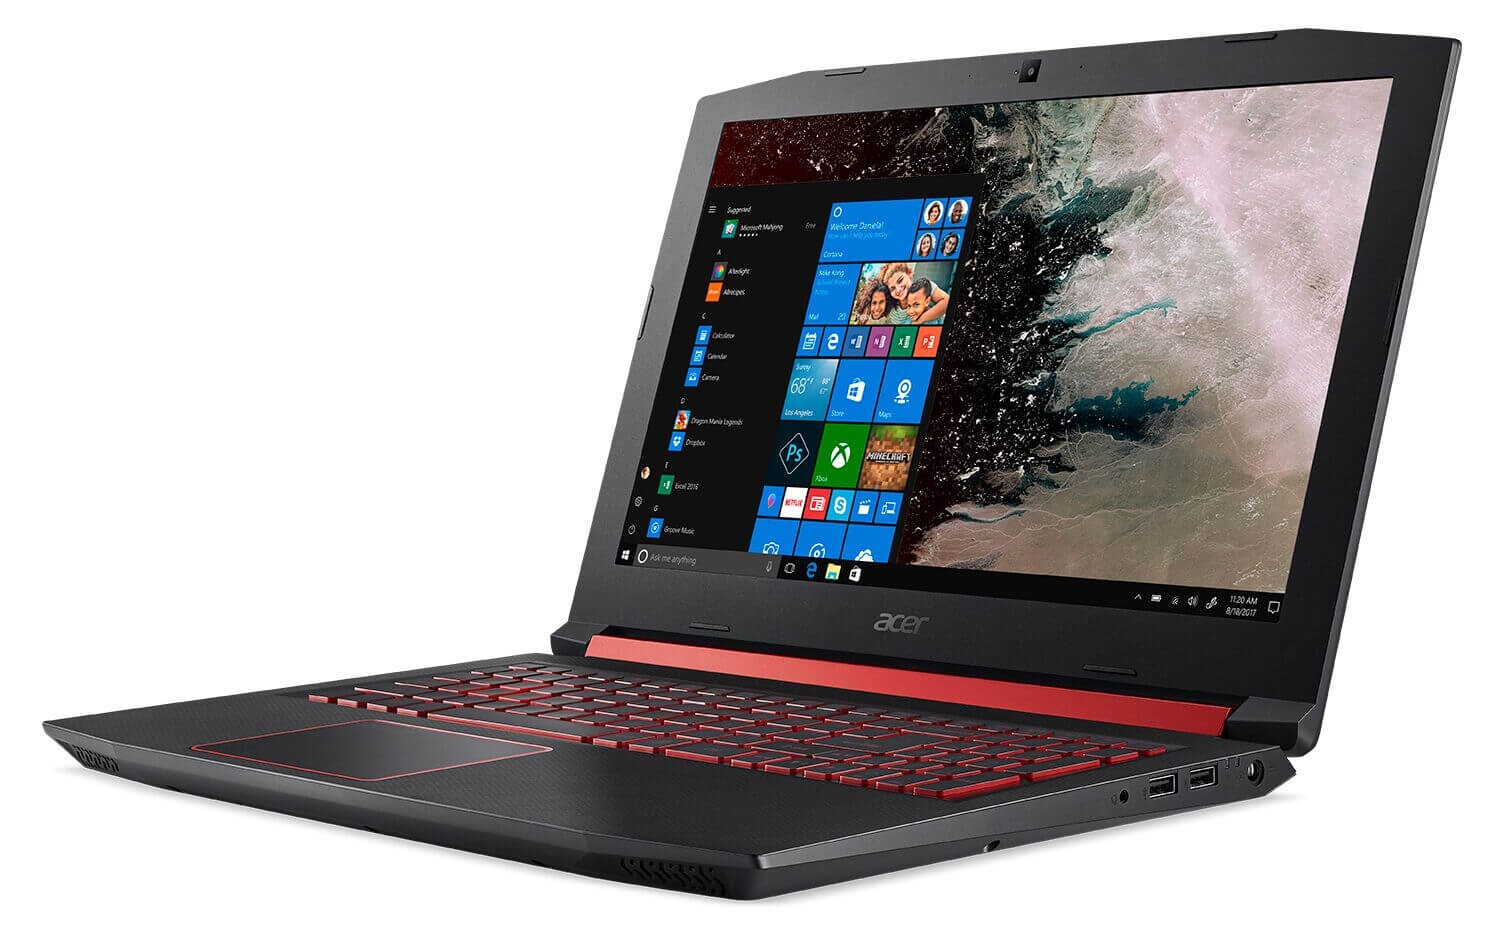 Acer\u0027s updated laptops include the thinnest computer in the world